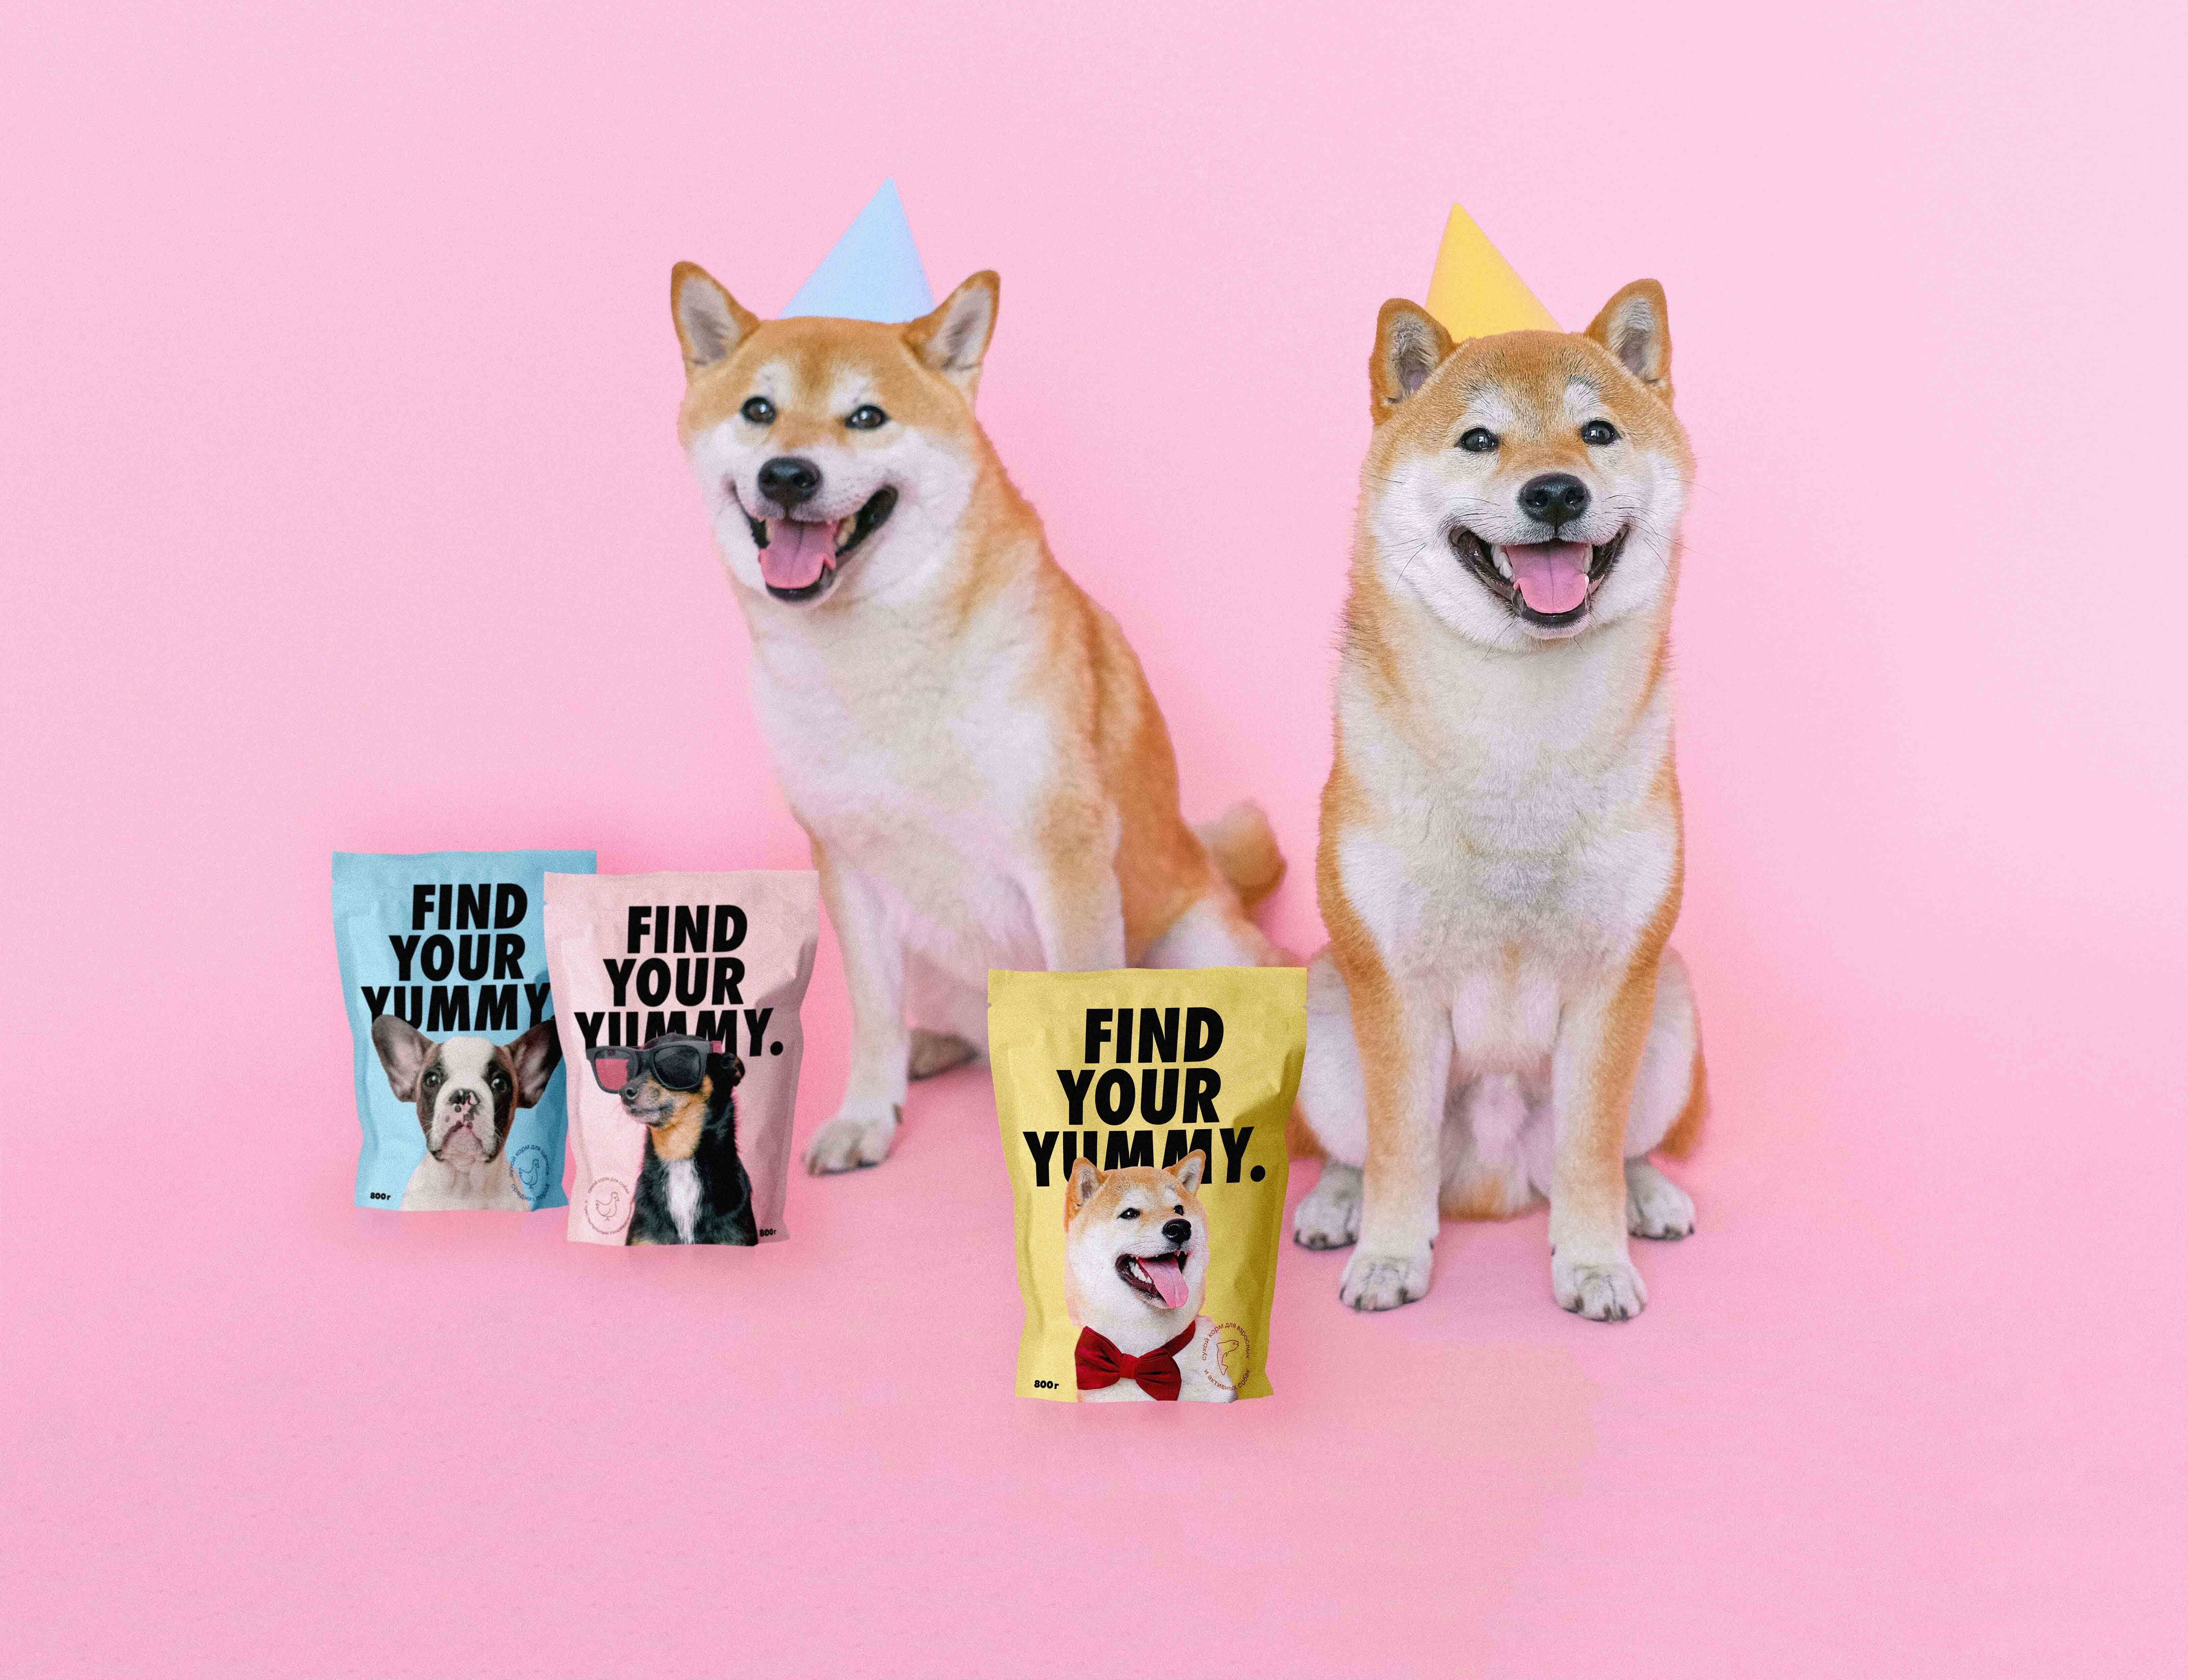 Dog Food Find Your Yummy Student Concept Packaging Design by Nastya Timoshenko